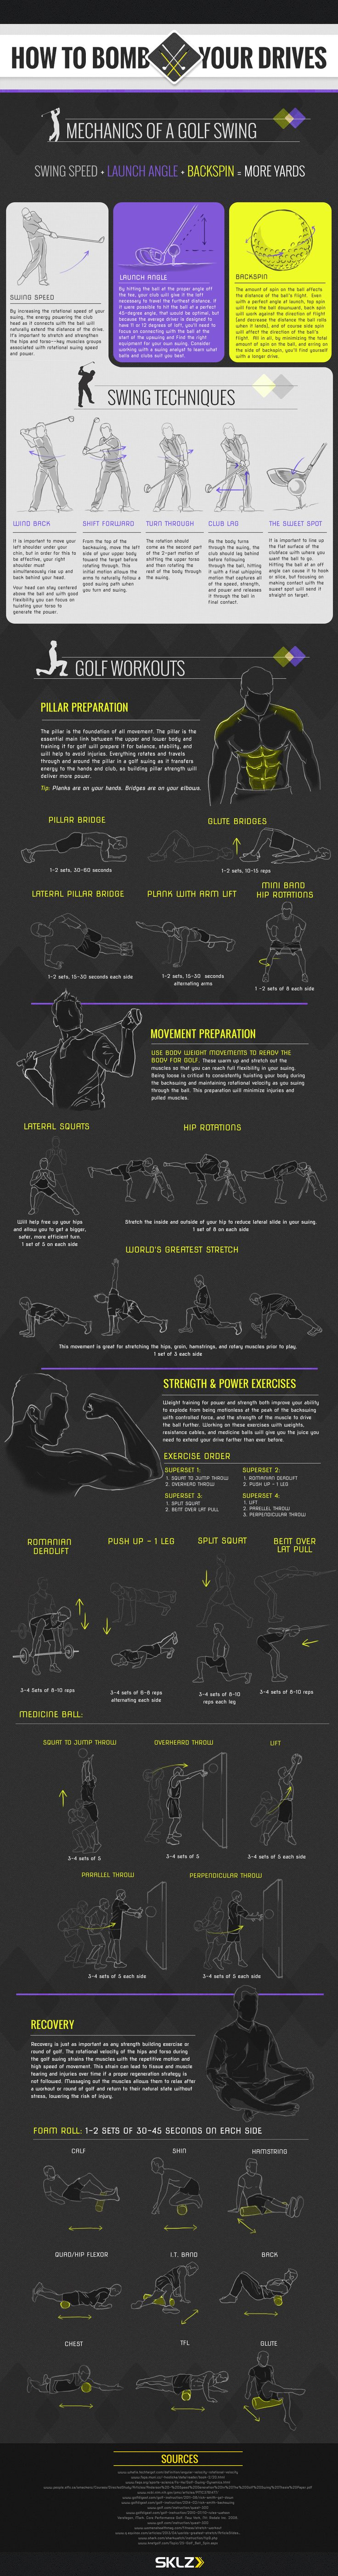 Ever wonder why you can't seem to perfect your golf game? Or have you been trying to get that left hook out of your drive? A large part of being a great golfer is having the body and core strength to properly execute your shots. This infographic by SKLZ displays body position, swing direction, and impact angel to optimize your golf drive. It also depicts some great strength building exercises to help you gain the necessary strength efficiently and effectively.